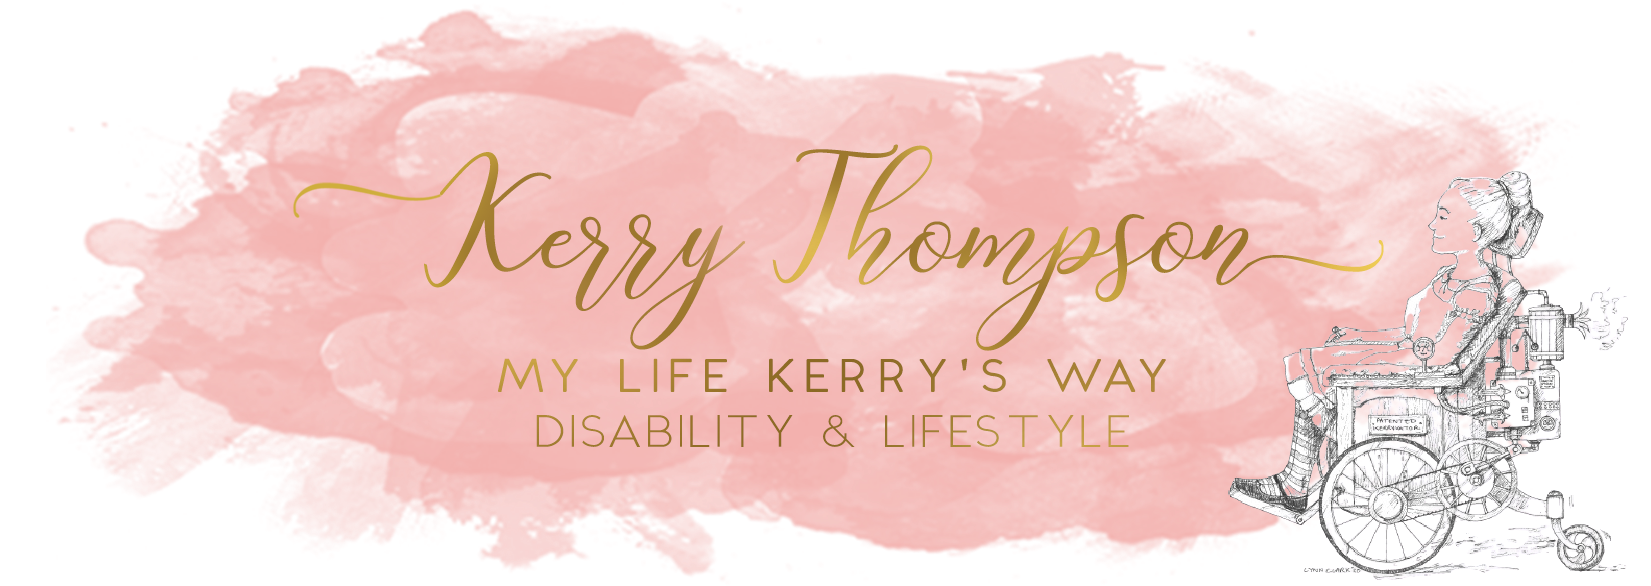 My Life, Kerry's Way